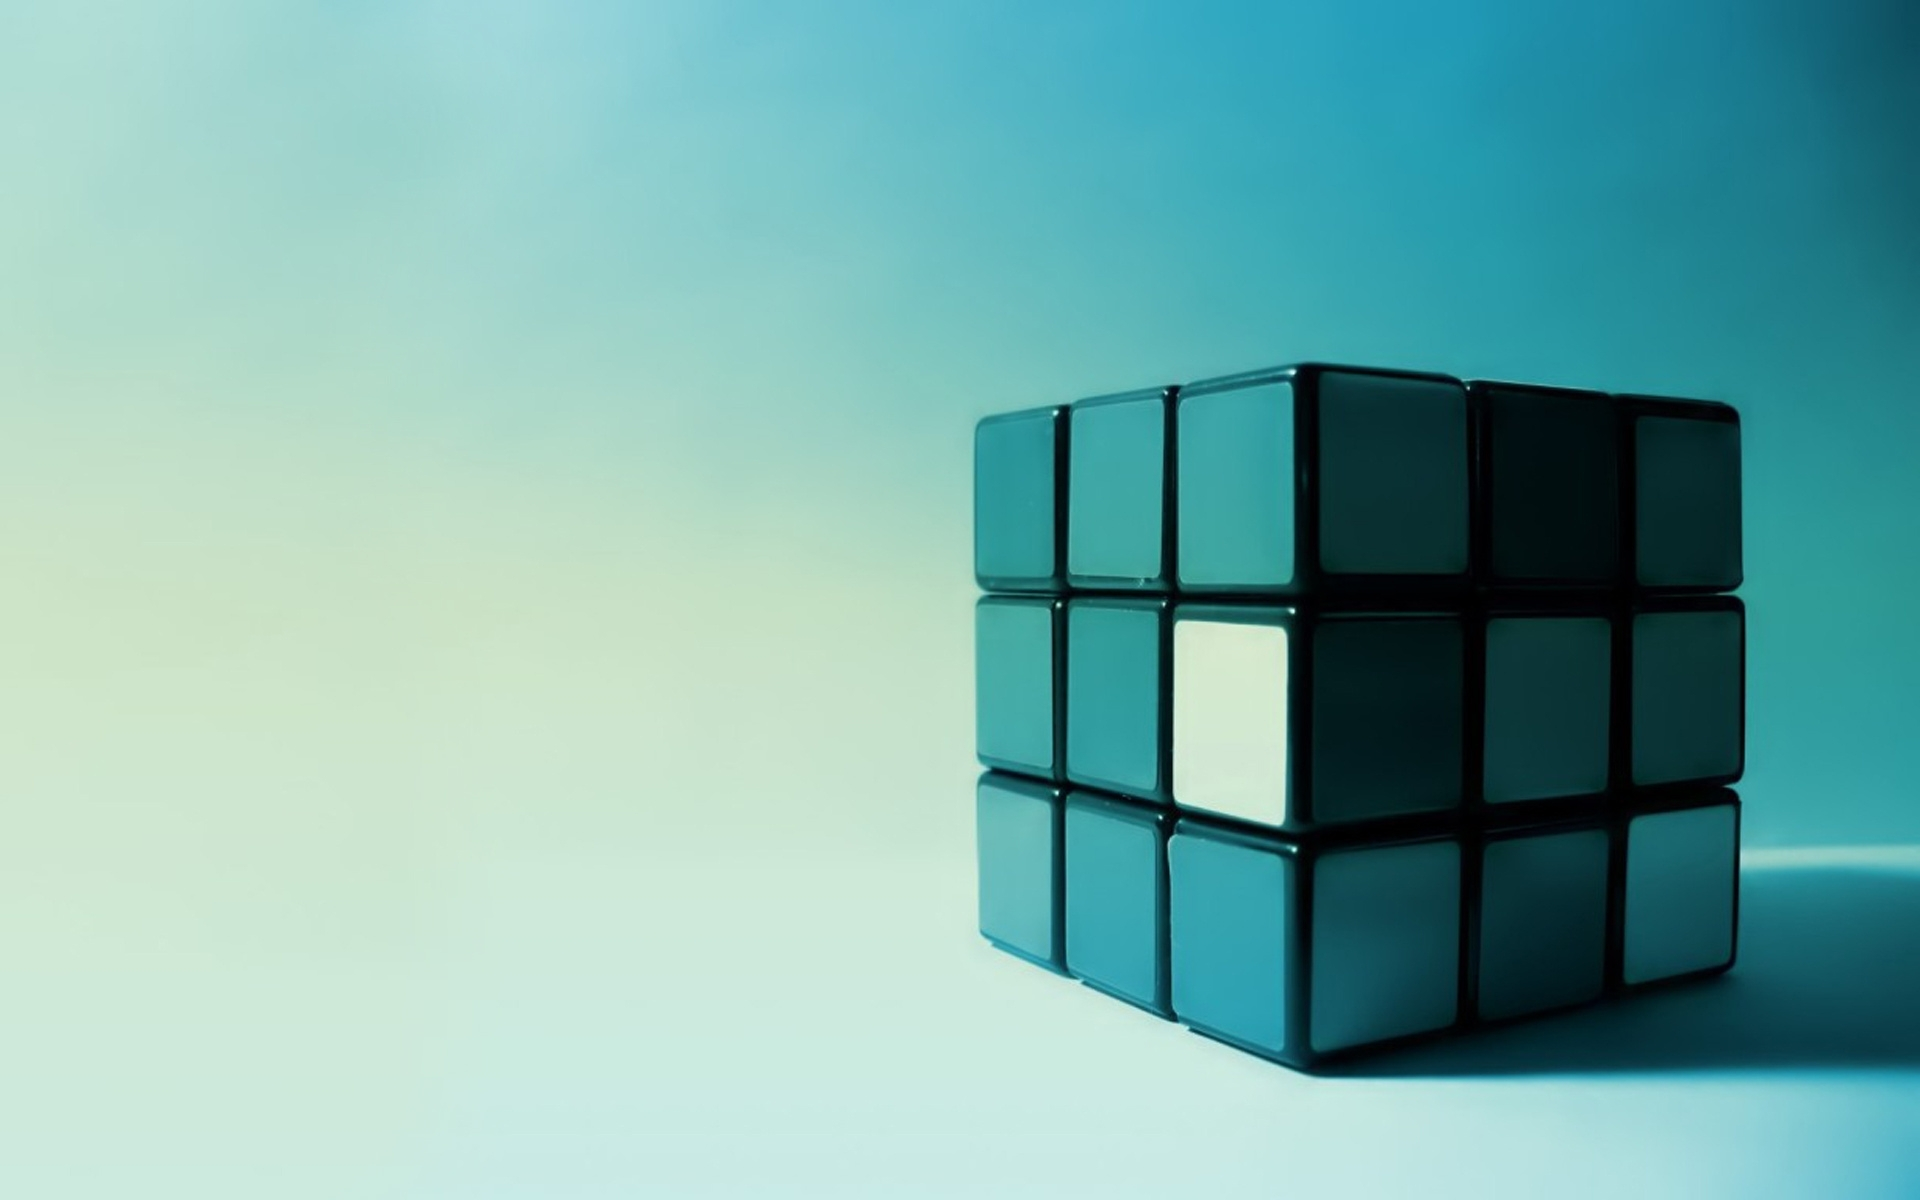 cube wallpapers, photos and desktop backgrounds up to 8K ...